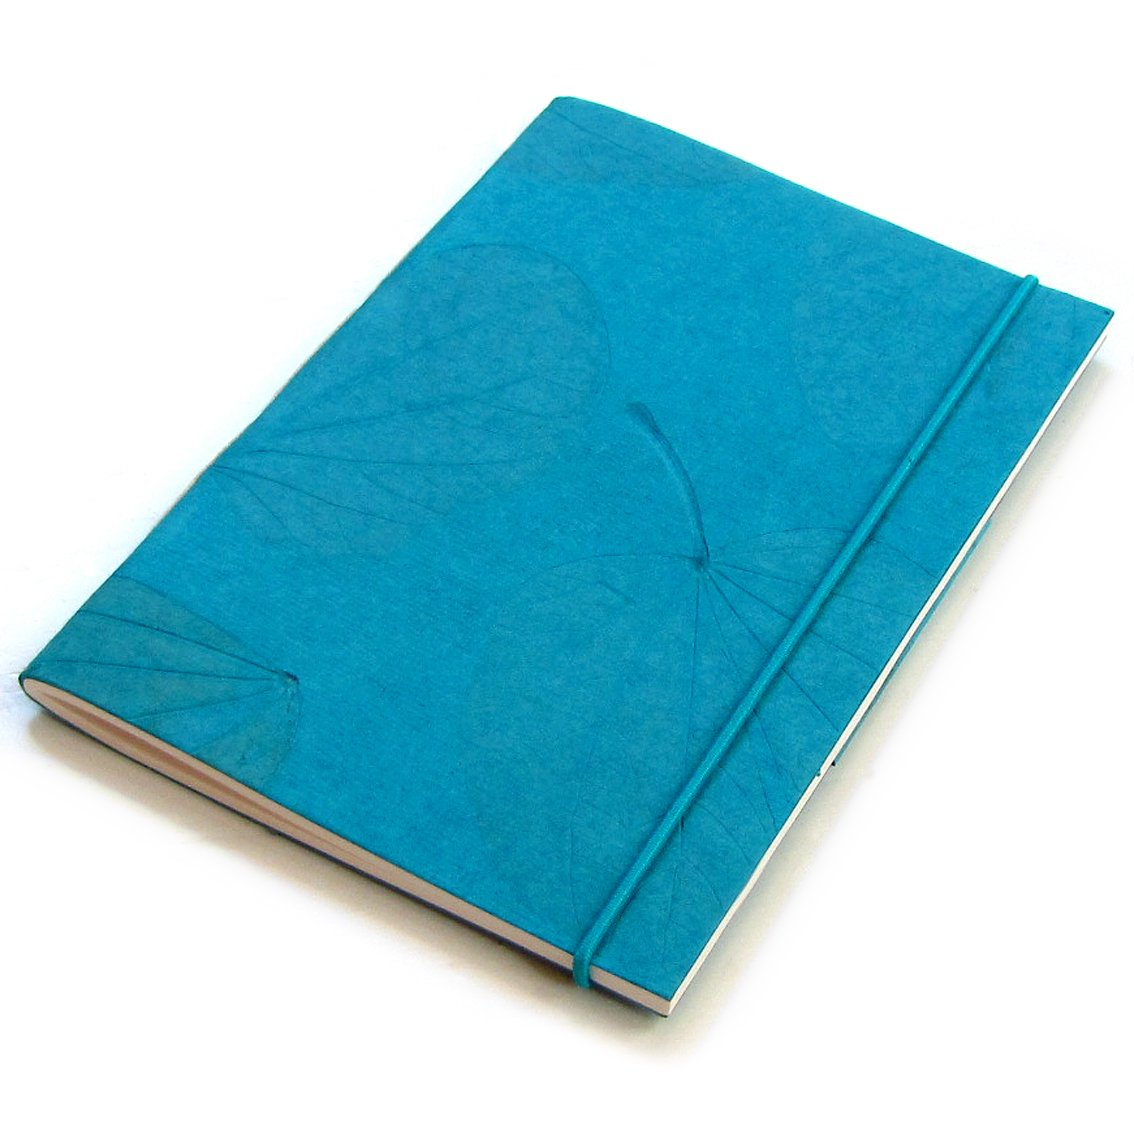 Handmade journal paper craft Xmas mom present stationery diaries teal heart leaf blank 5x7 40pp notes